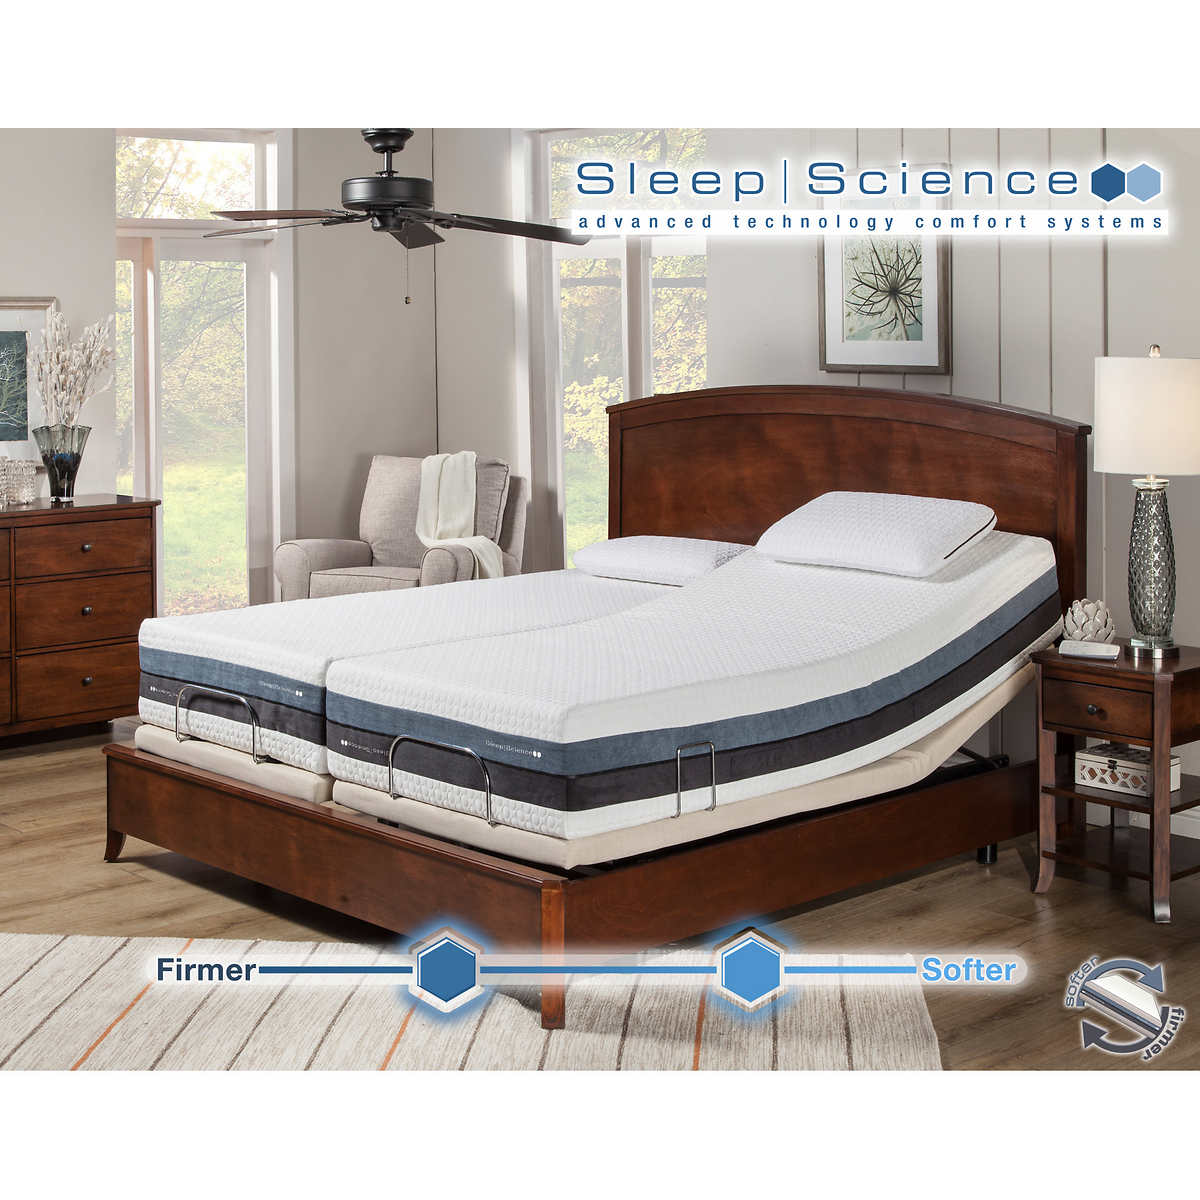 sleep science 12 iflip sonoma split cal king dual comfort memory foam mattress with adjustable - Bed Frames And Mattresses